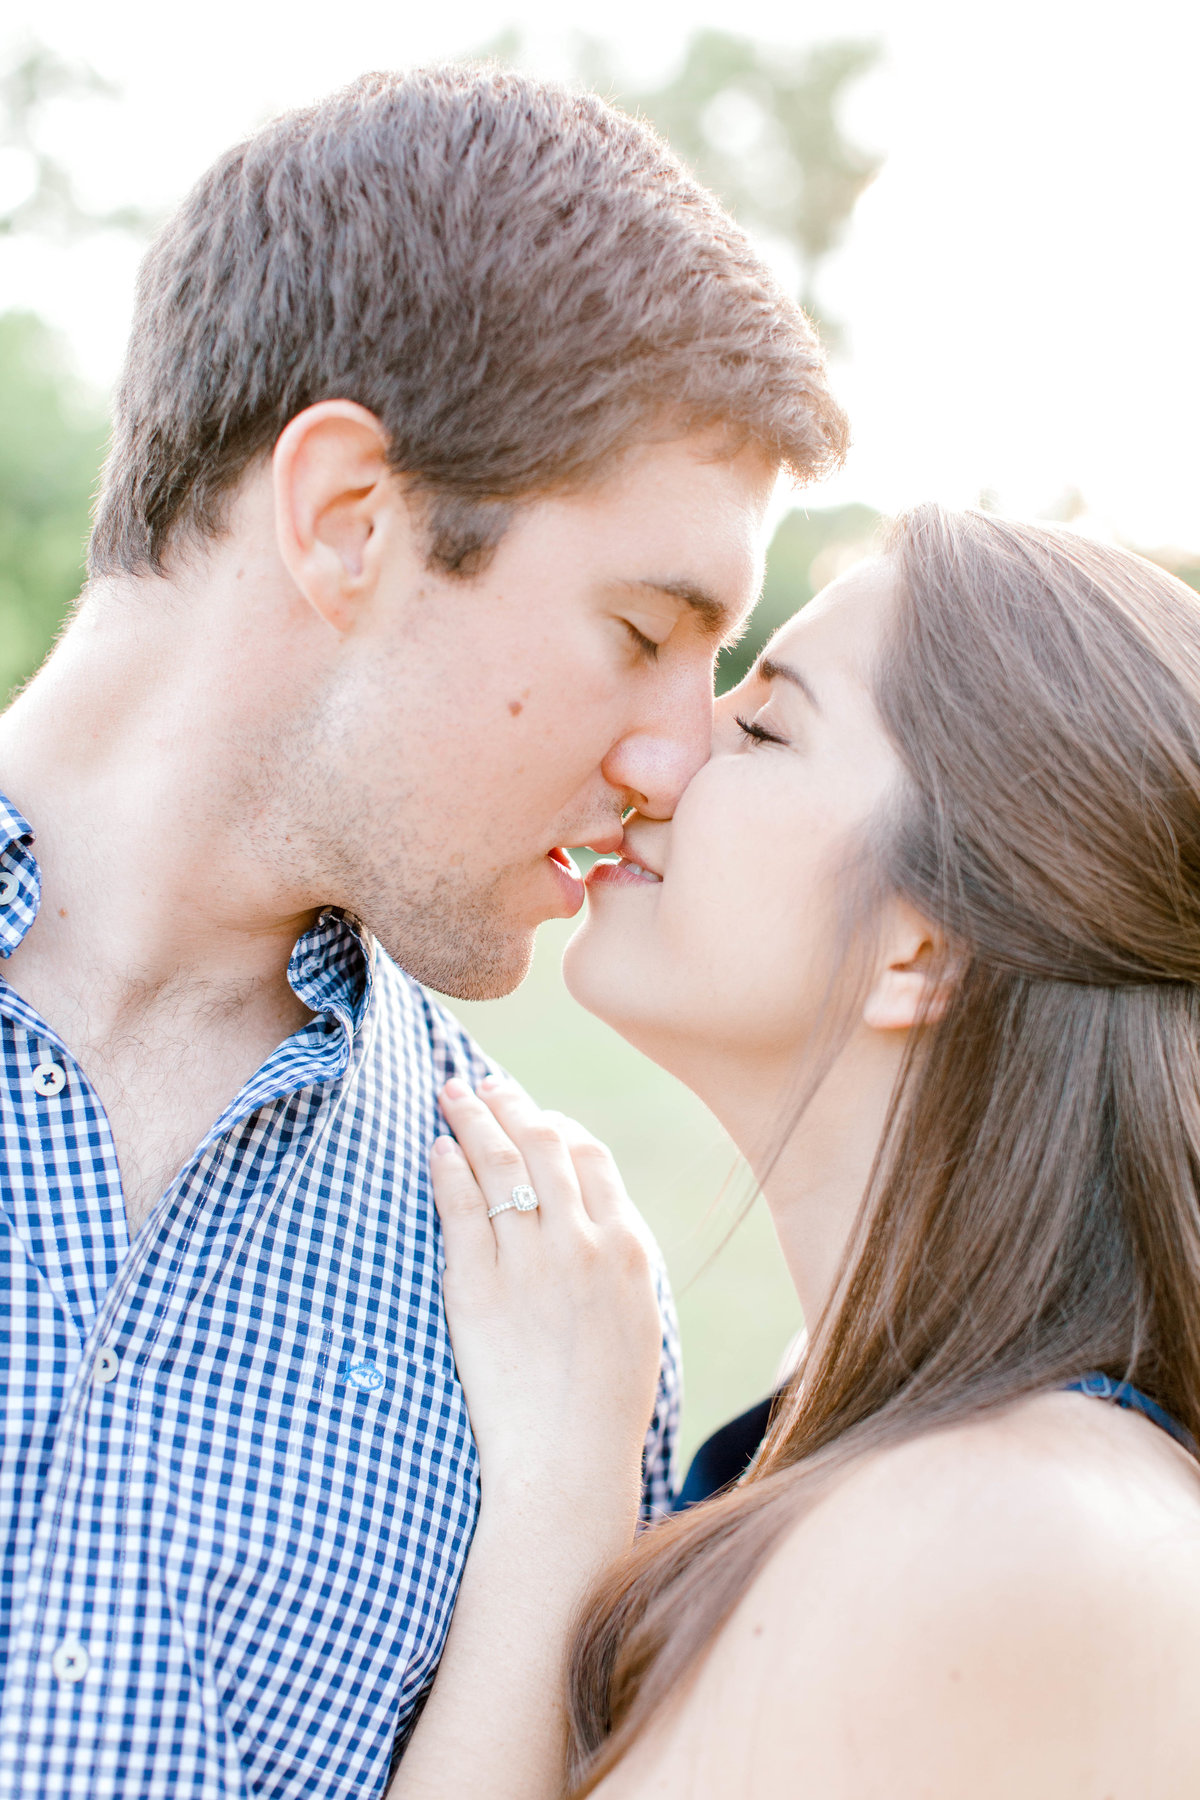 Melanie Foster Photography - Norman Oklahoma Senior and Engagement Photographer - Couple Engagement Photo - 20